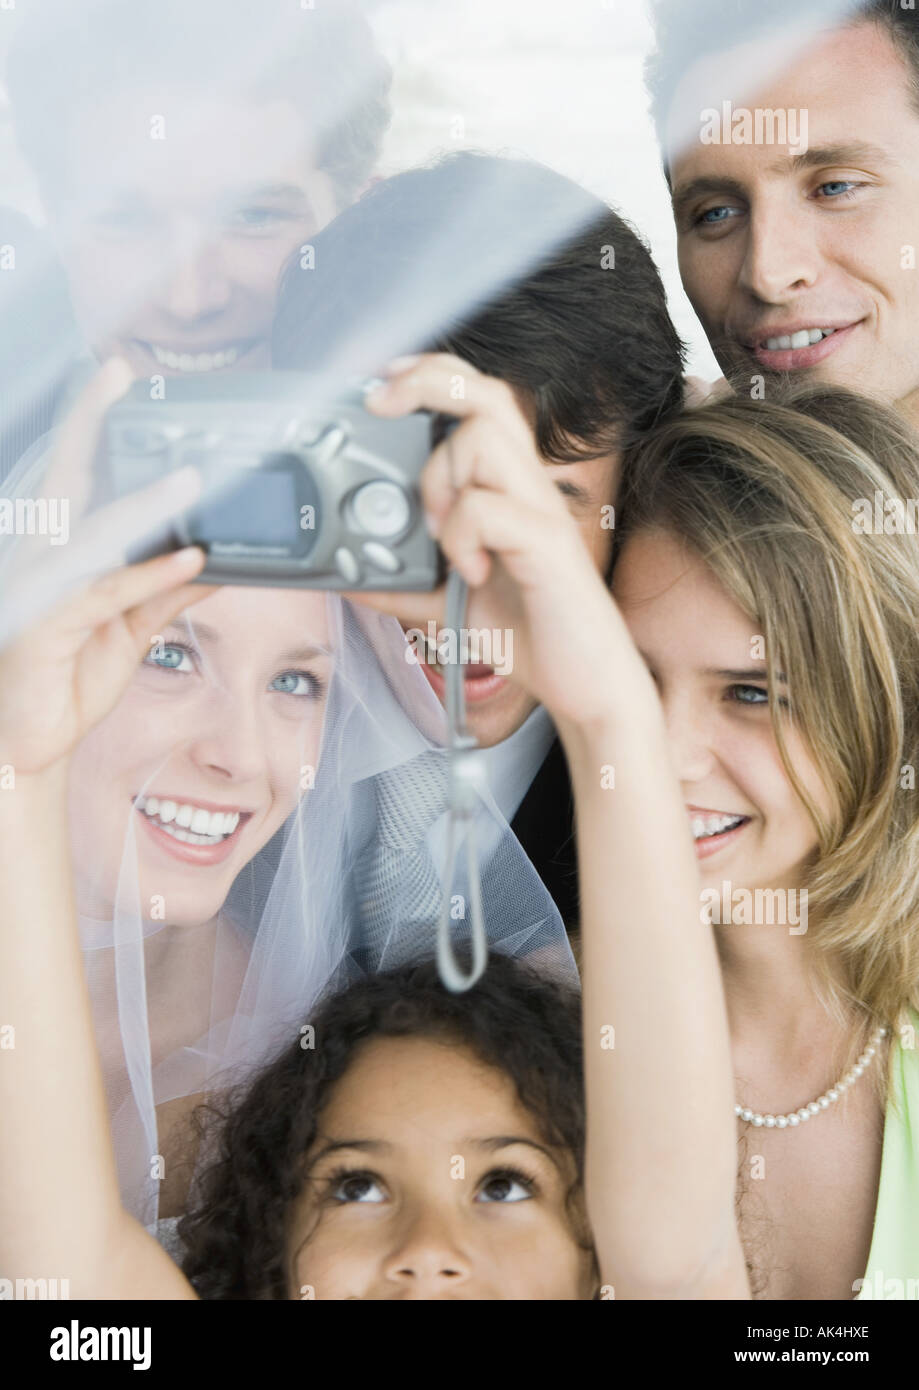 Group picture - Stock Image